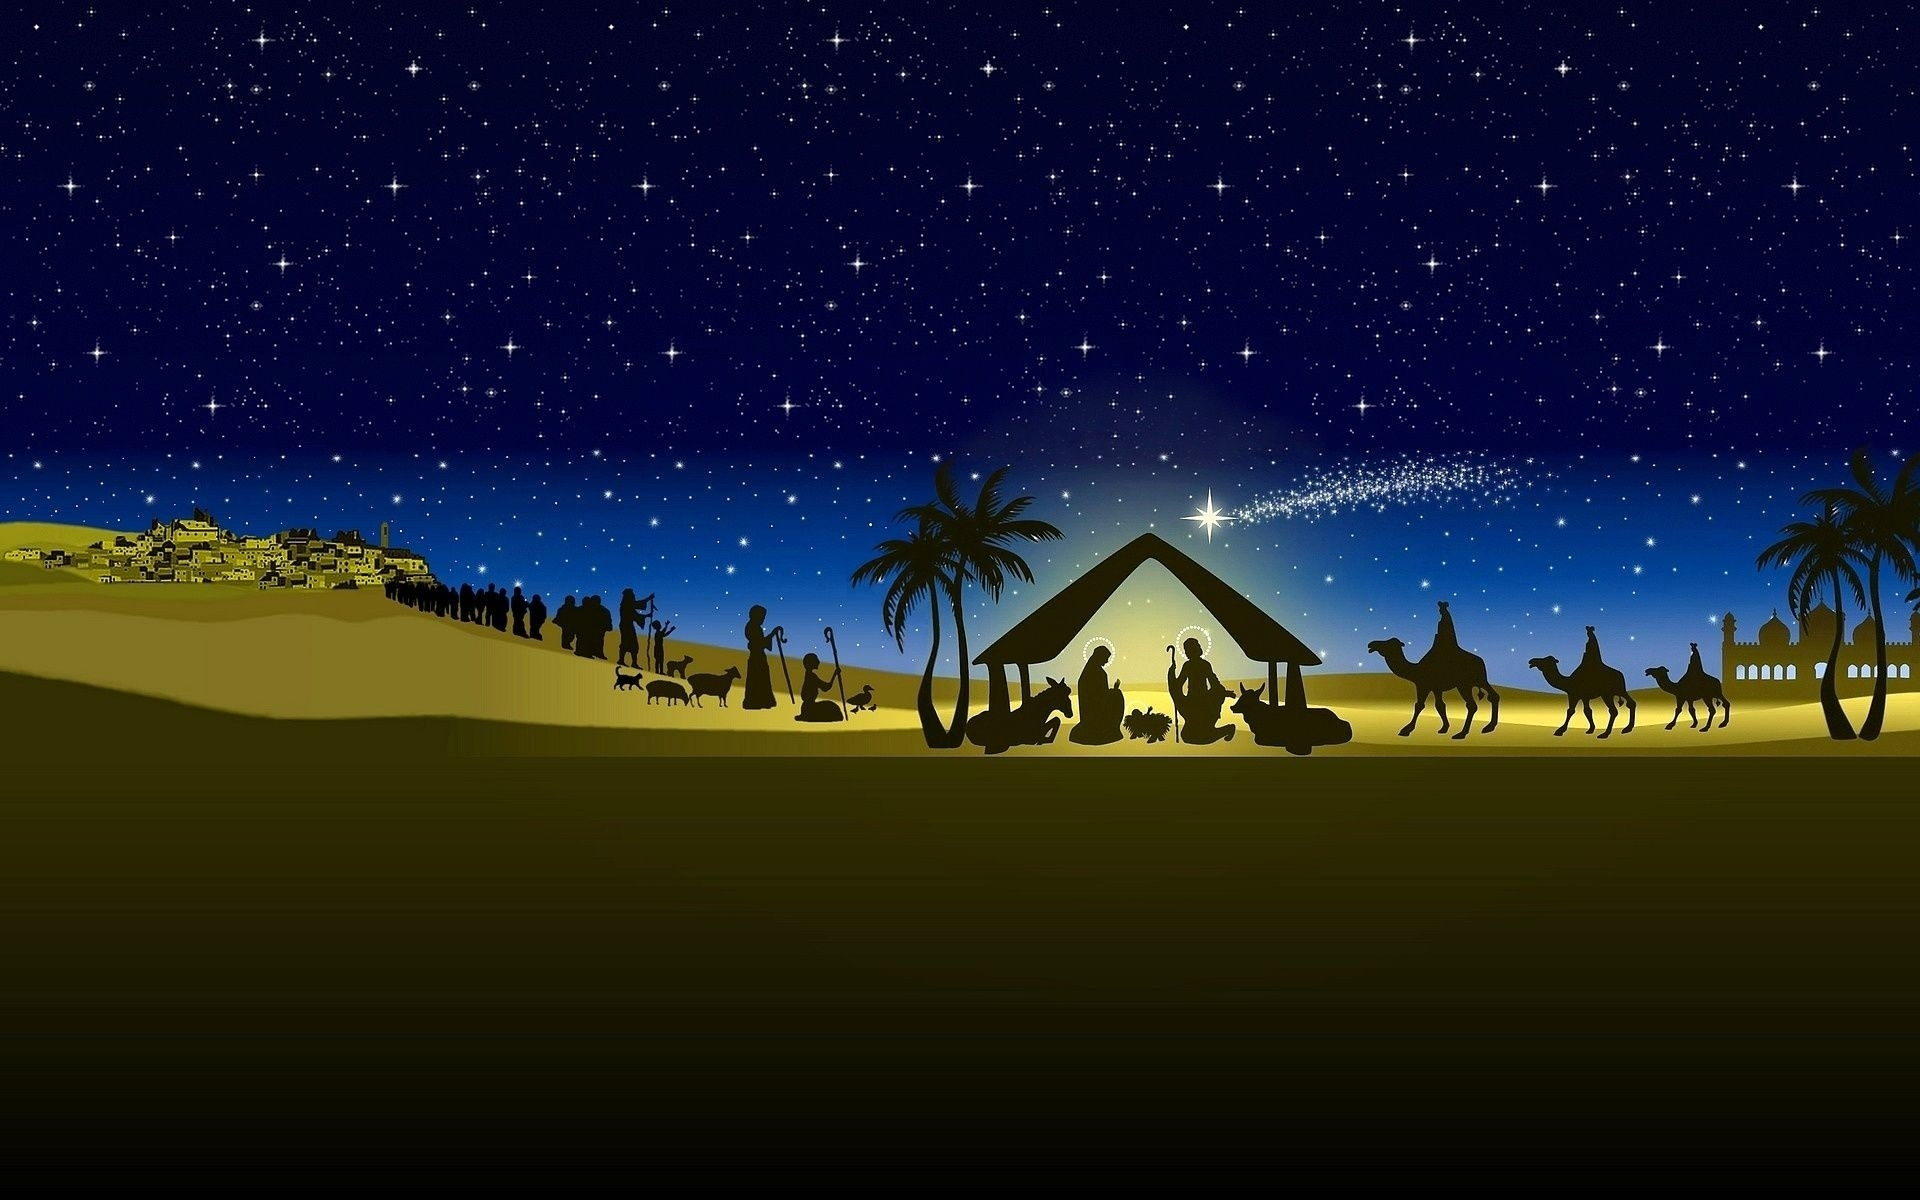 christmas nativity scene wallpaper ·① download free hd backgrounds